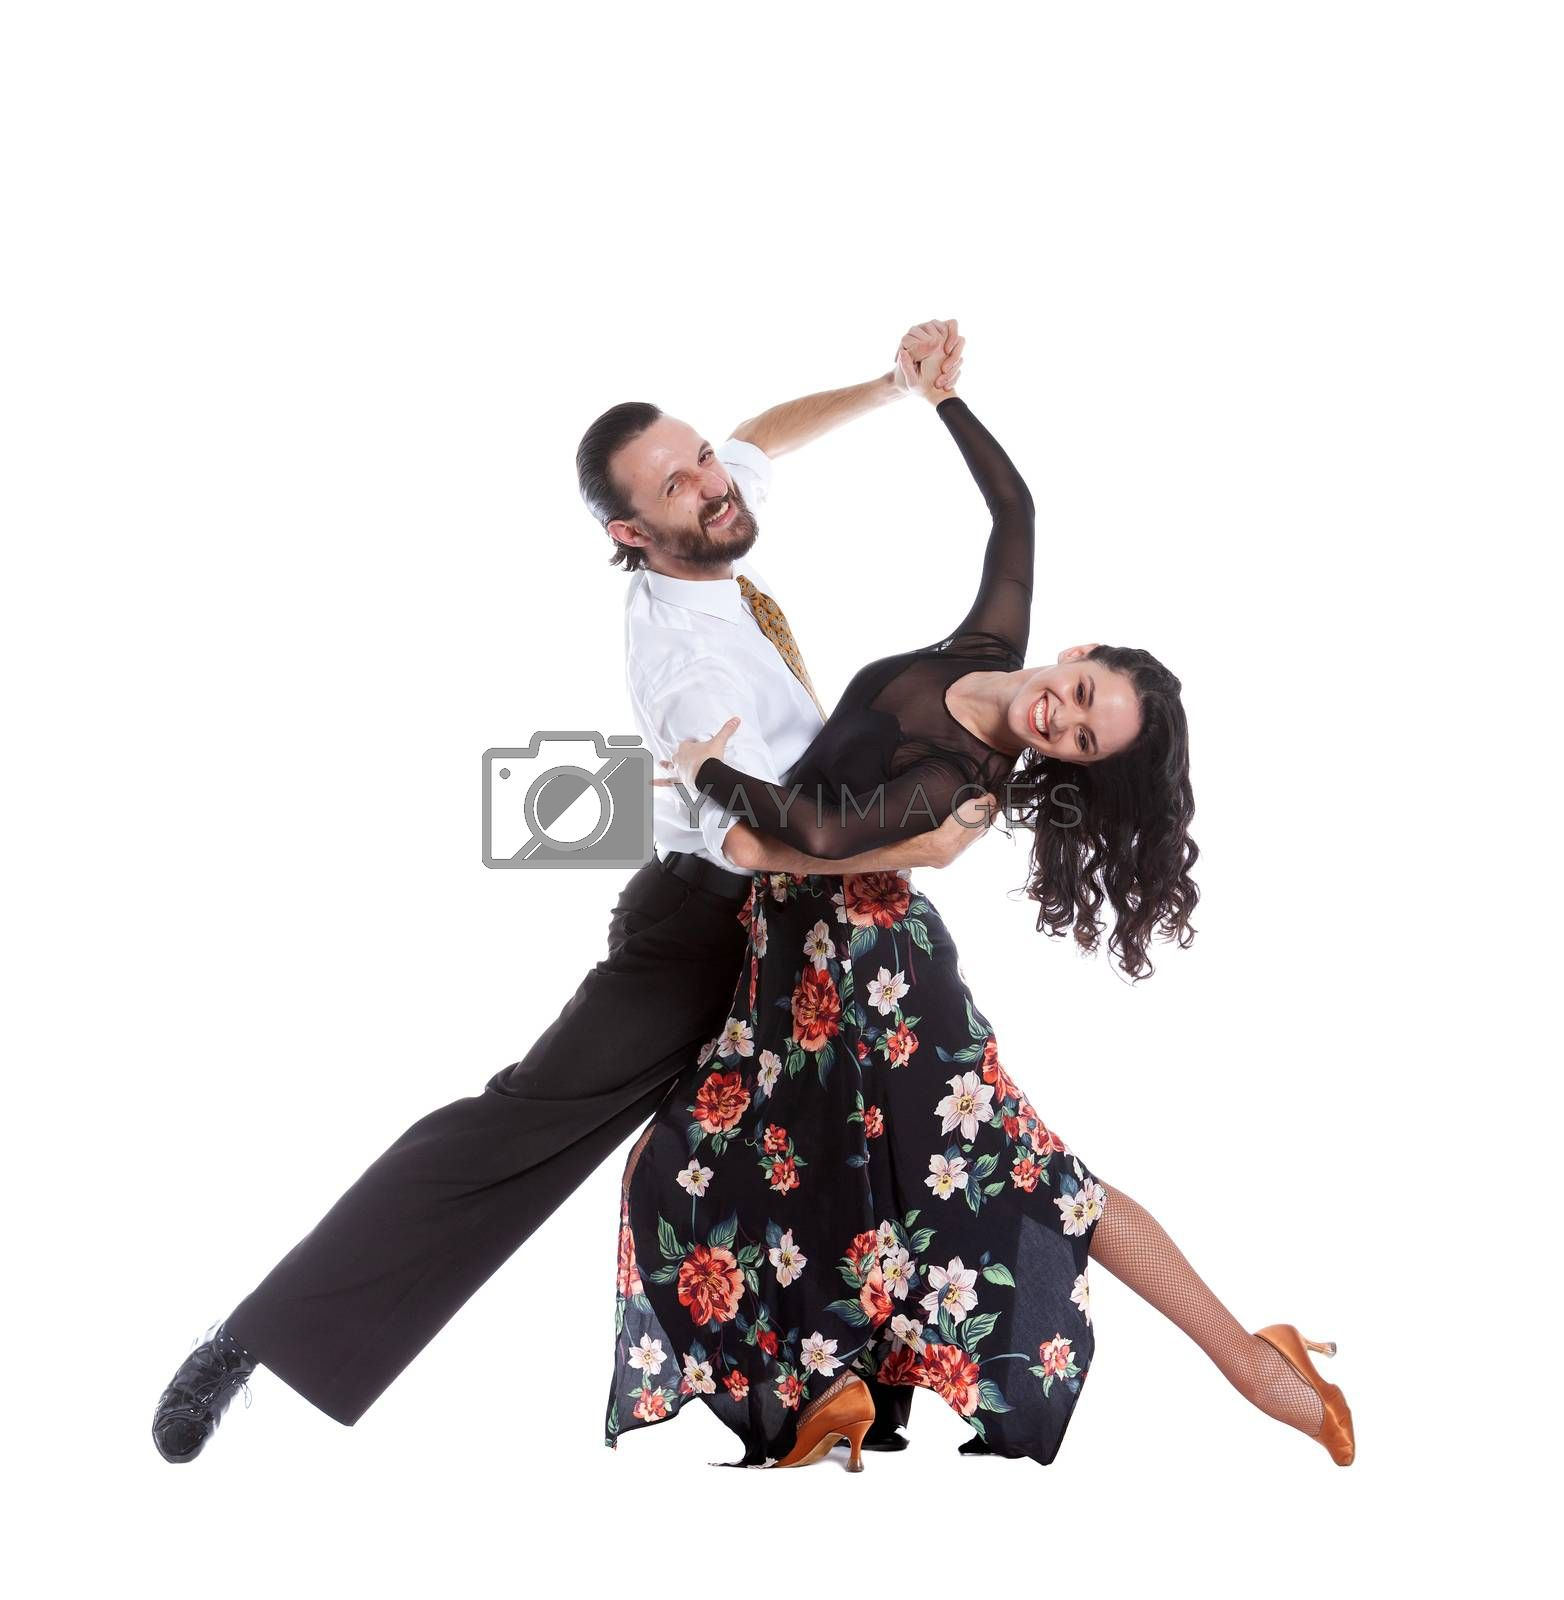 Young people isolated on white background having funny poses.